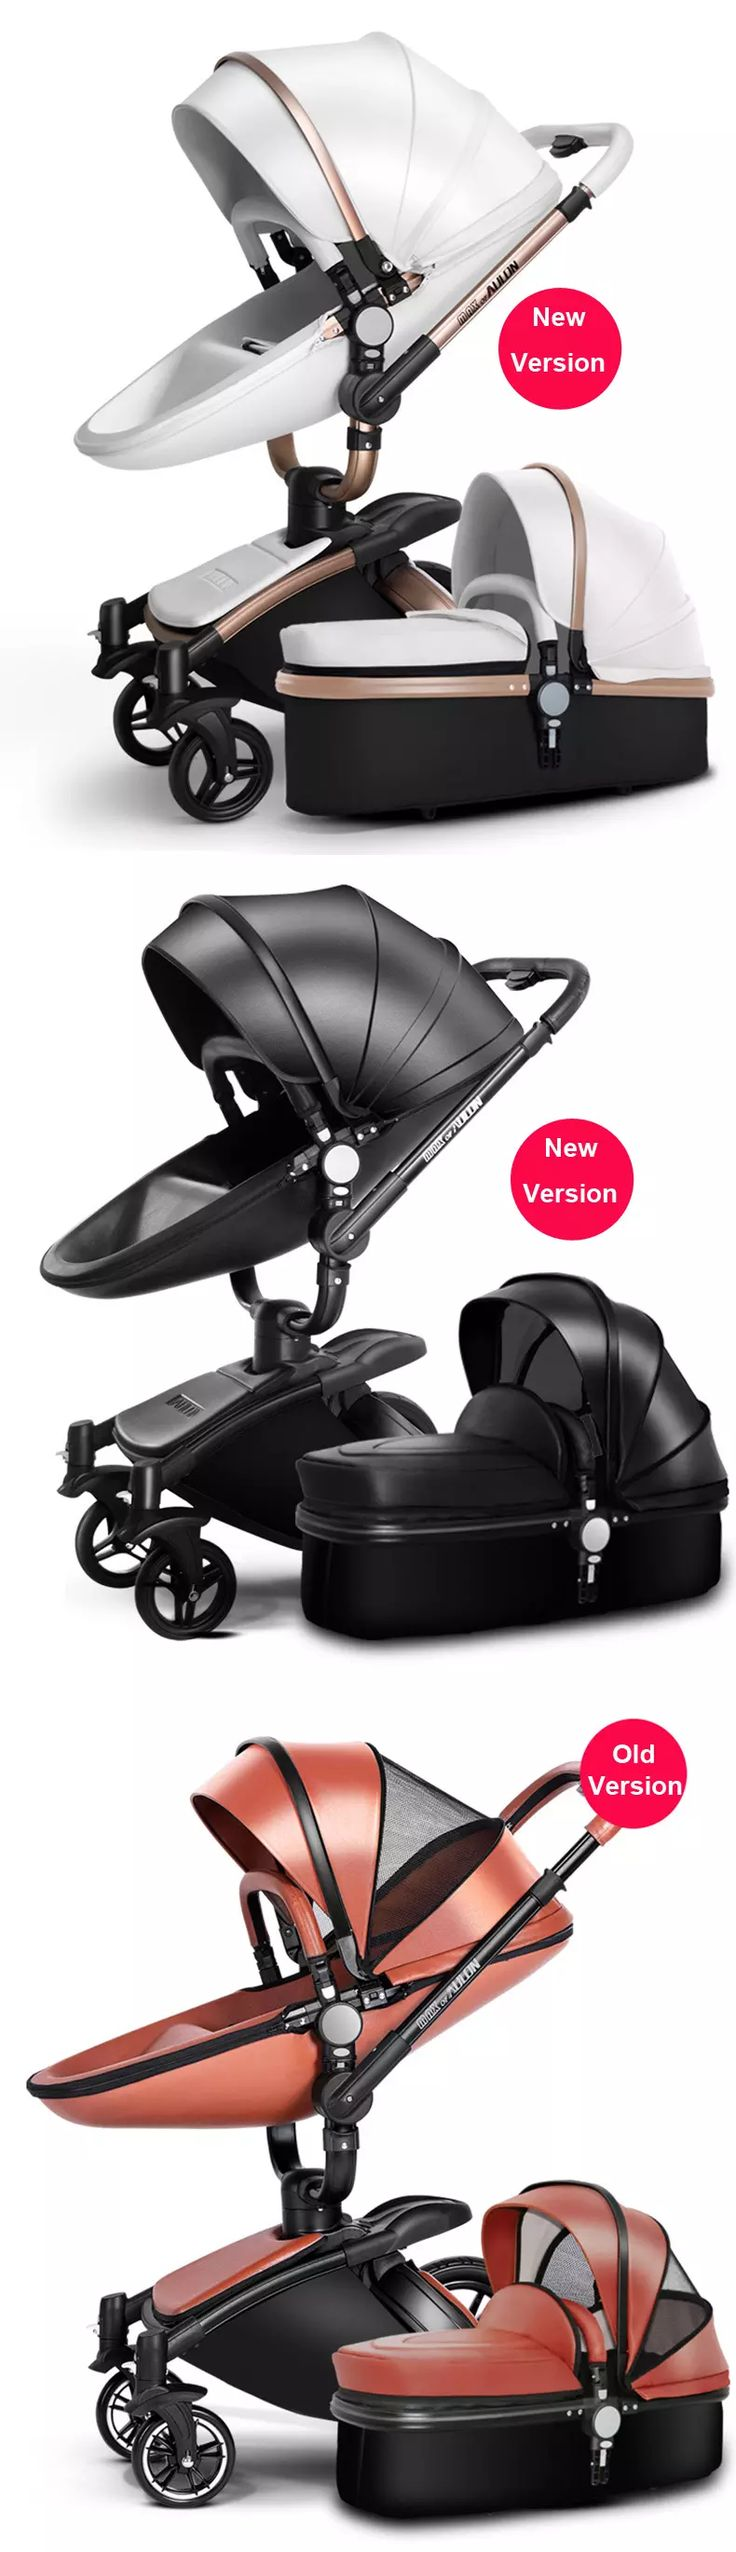 2017 luxury pu leather 3 in 1 baby stroller pram pushchair sleeping basket car seat 360 rotation suspension bidirectional baby trolley from